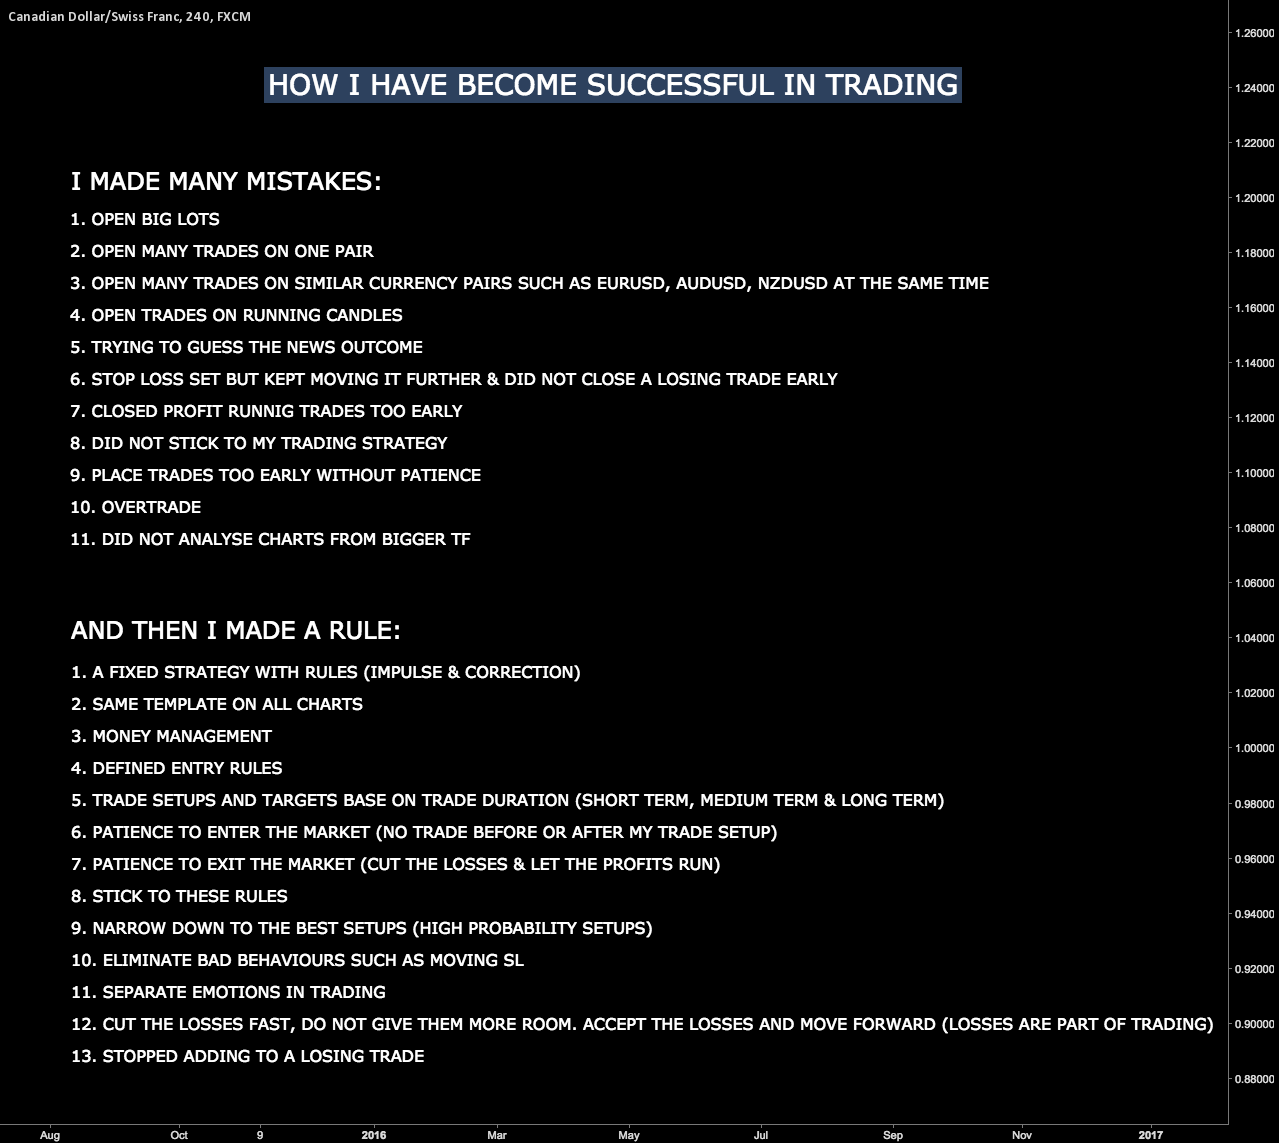 HOW TO BECOME SUCCESSFUL IN TRADING